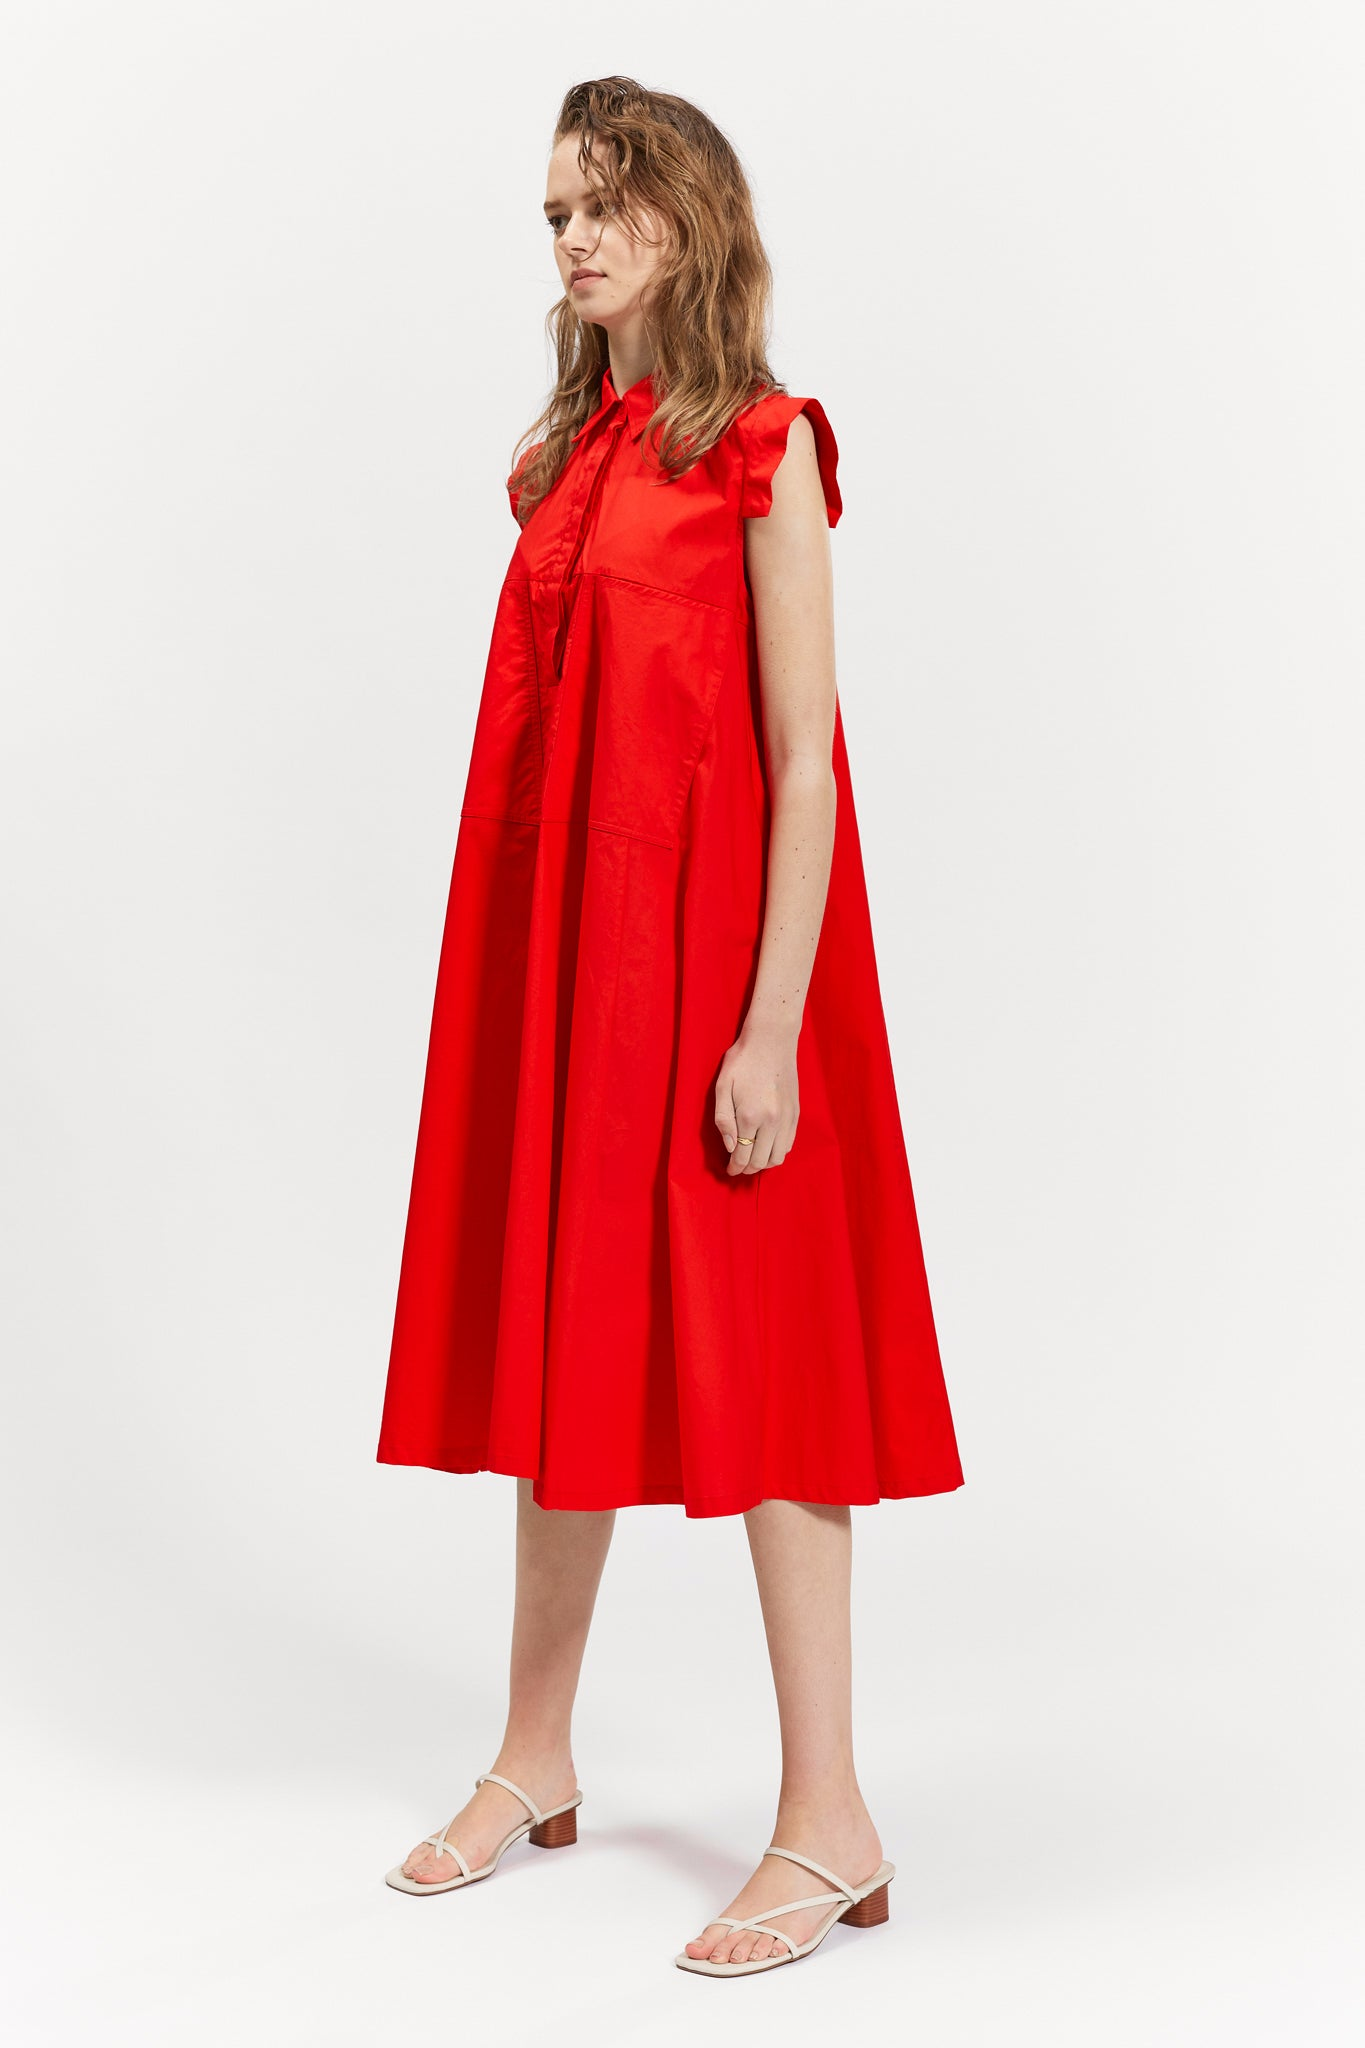 clare dress red